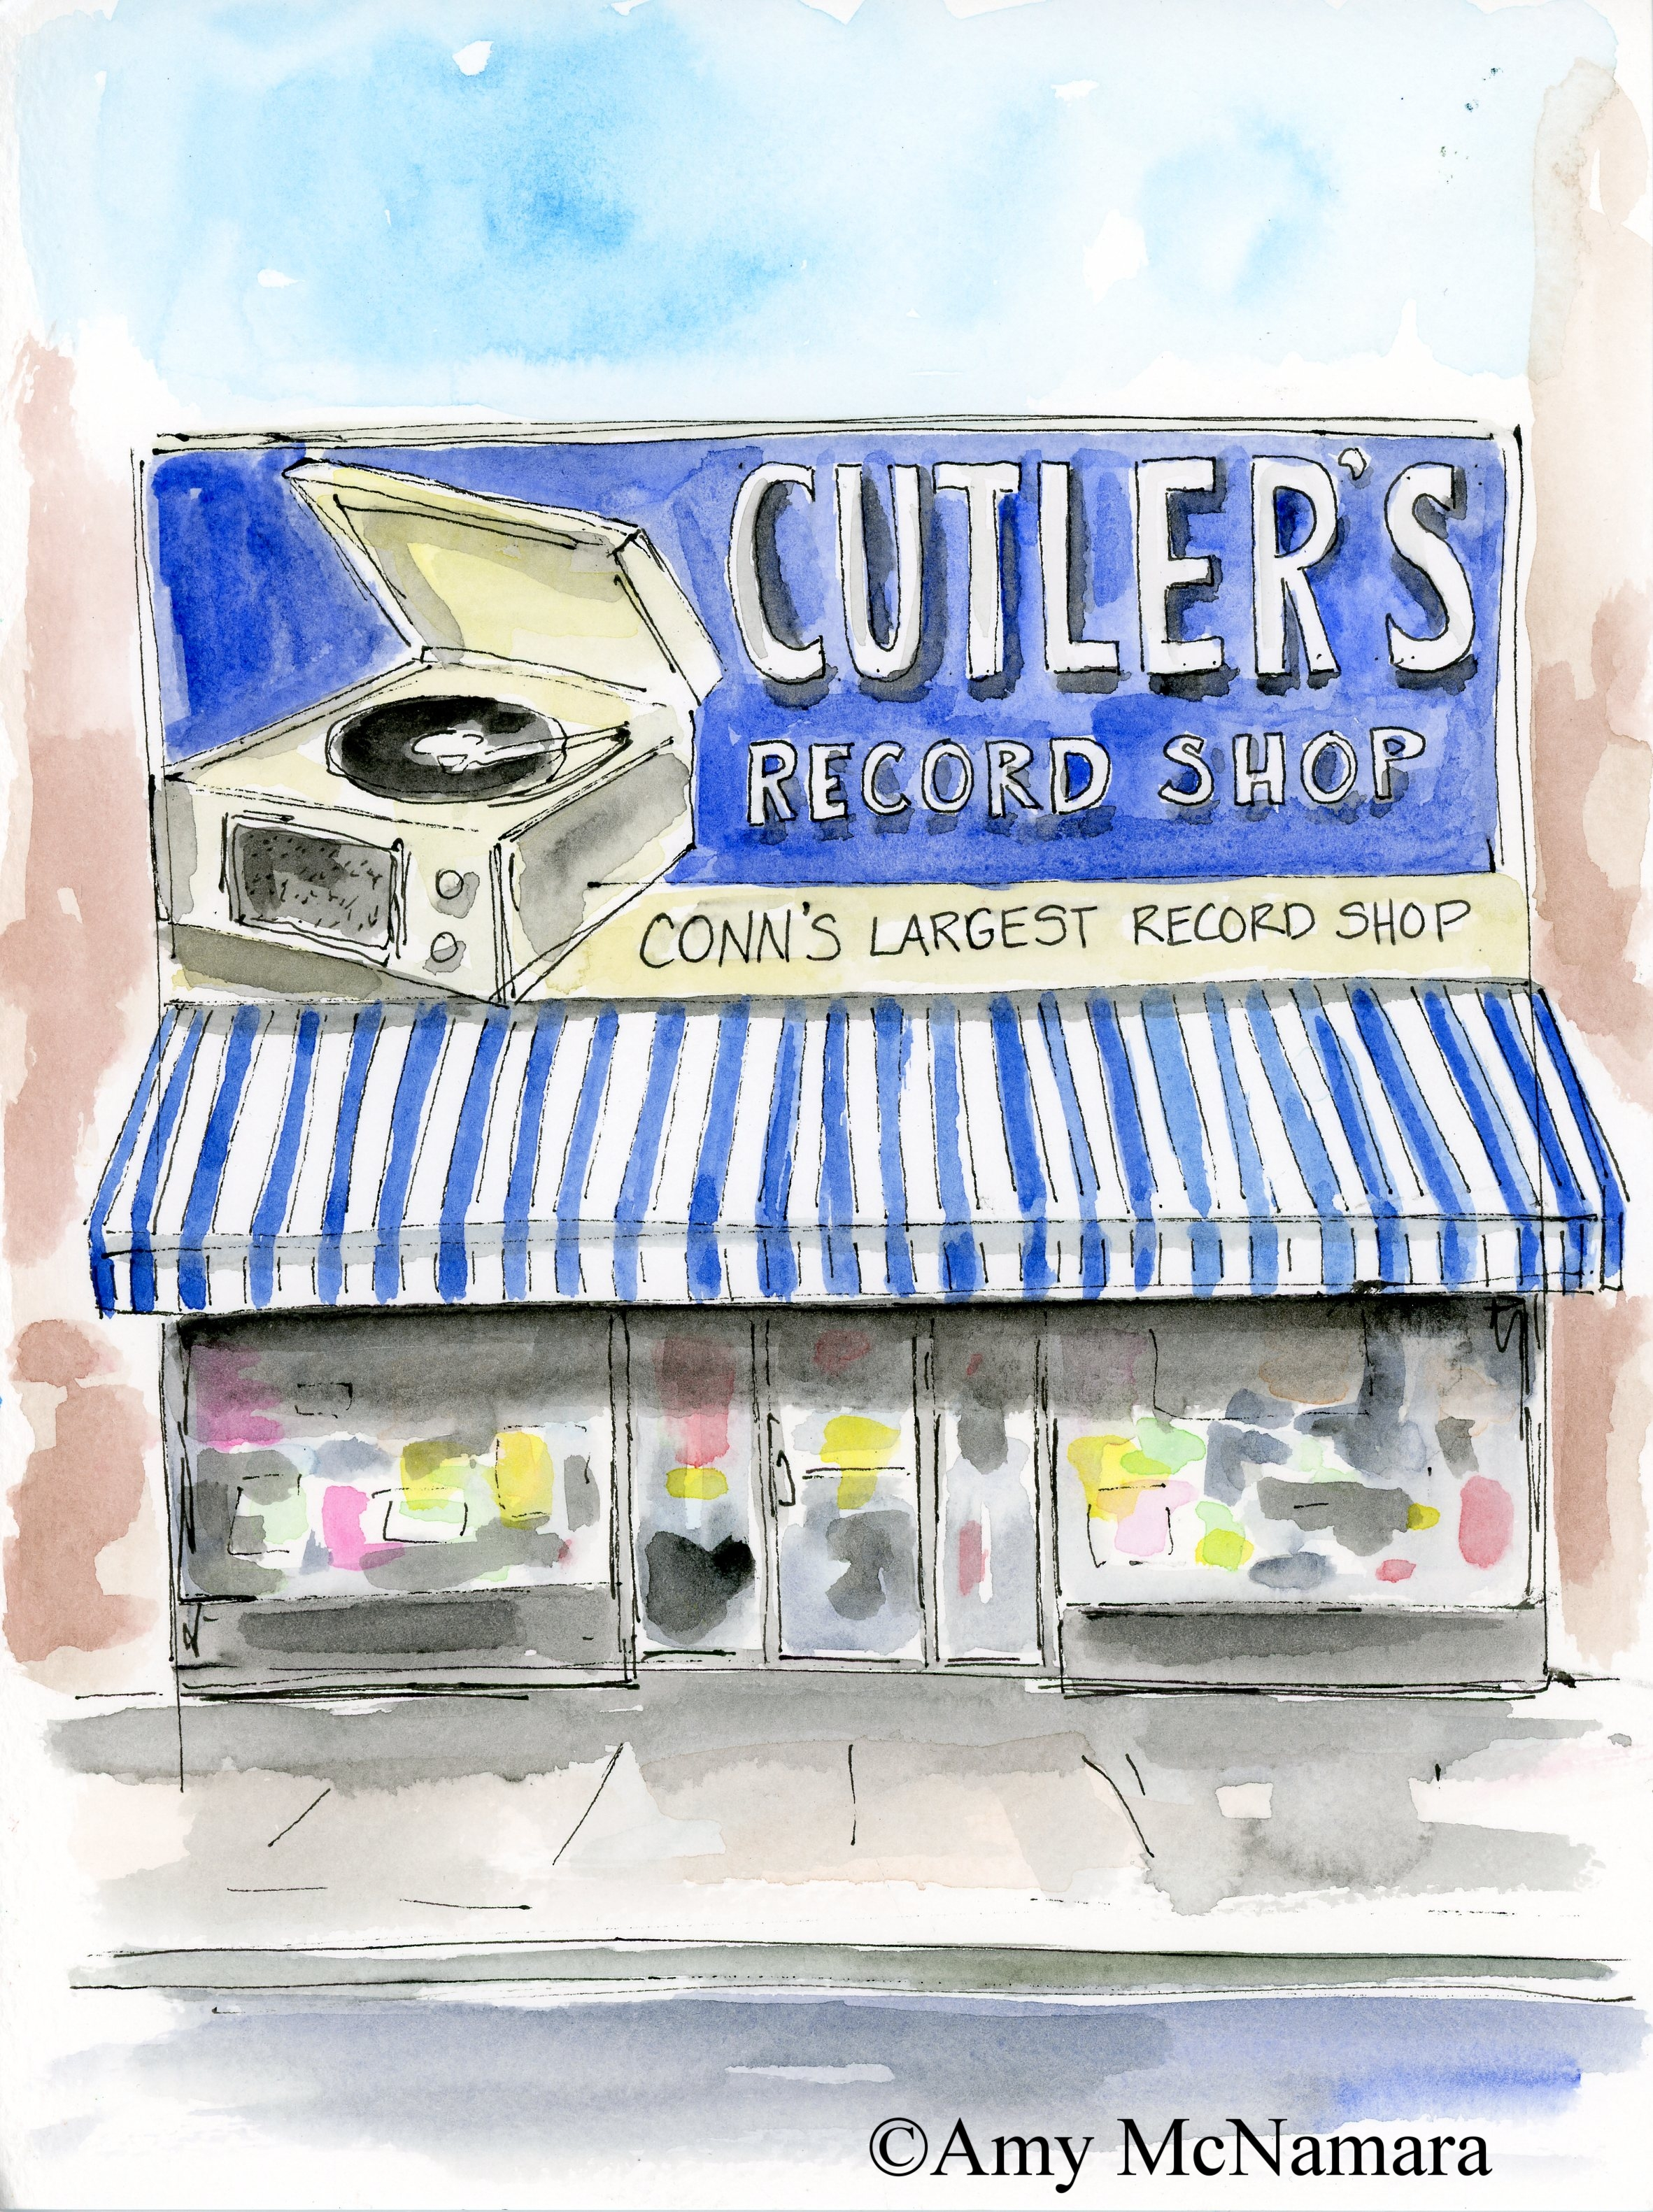 Cutlers Record Shop • New Haven, CT